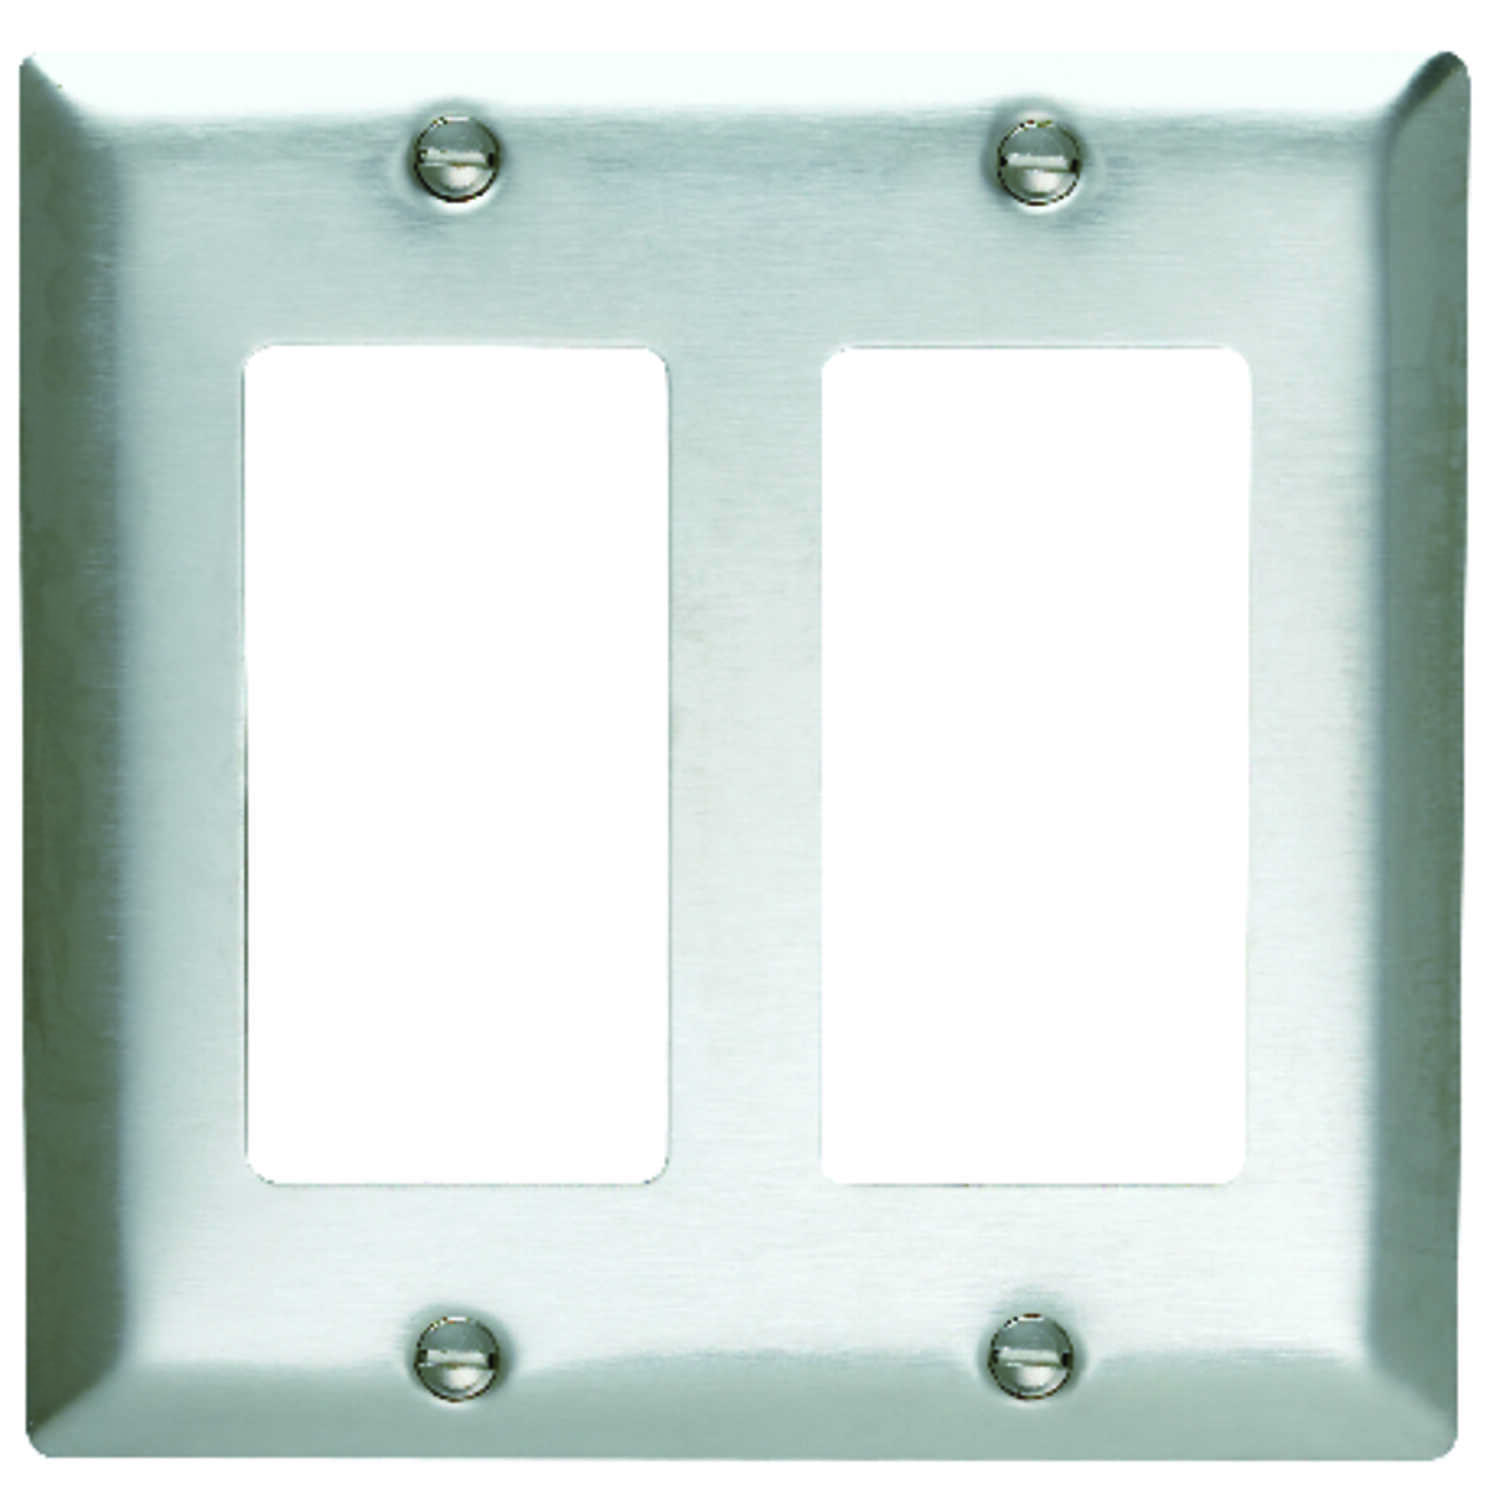 Pass & Seymour  Silver  2 gang Stainless Steel  Wall Plate  1 pk